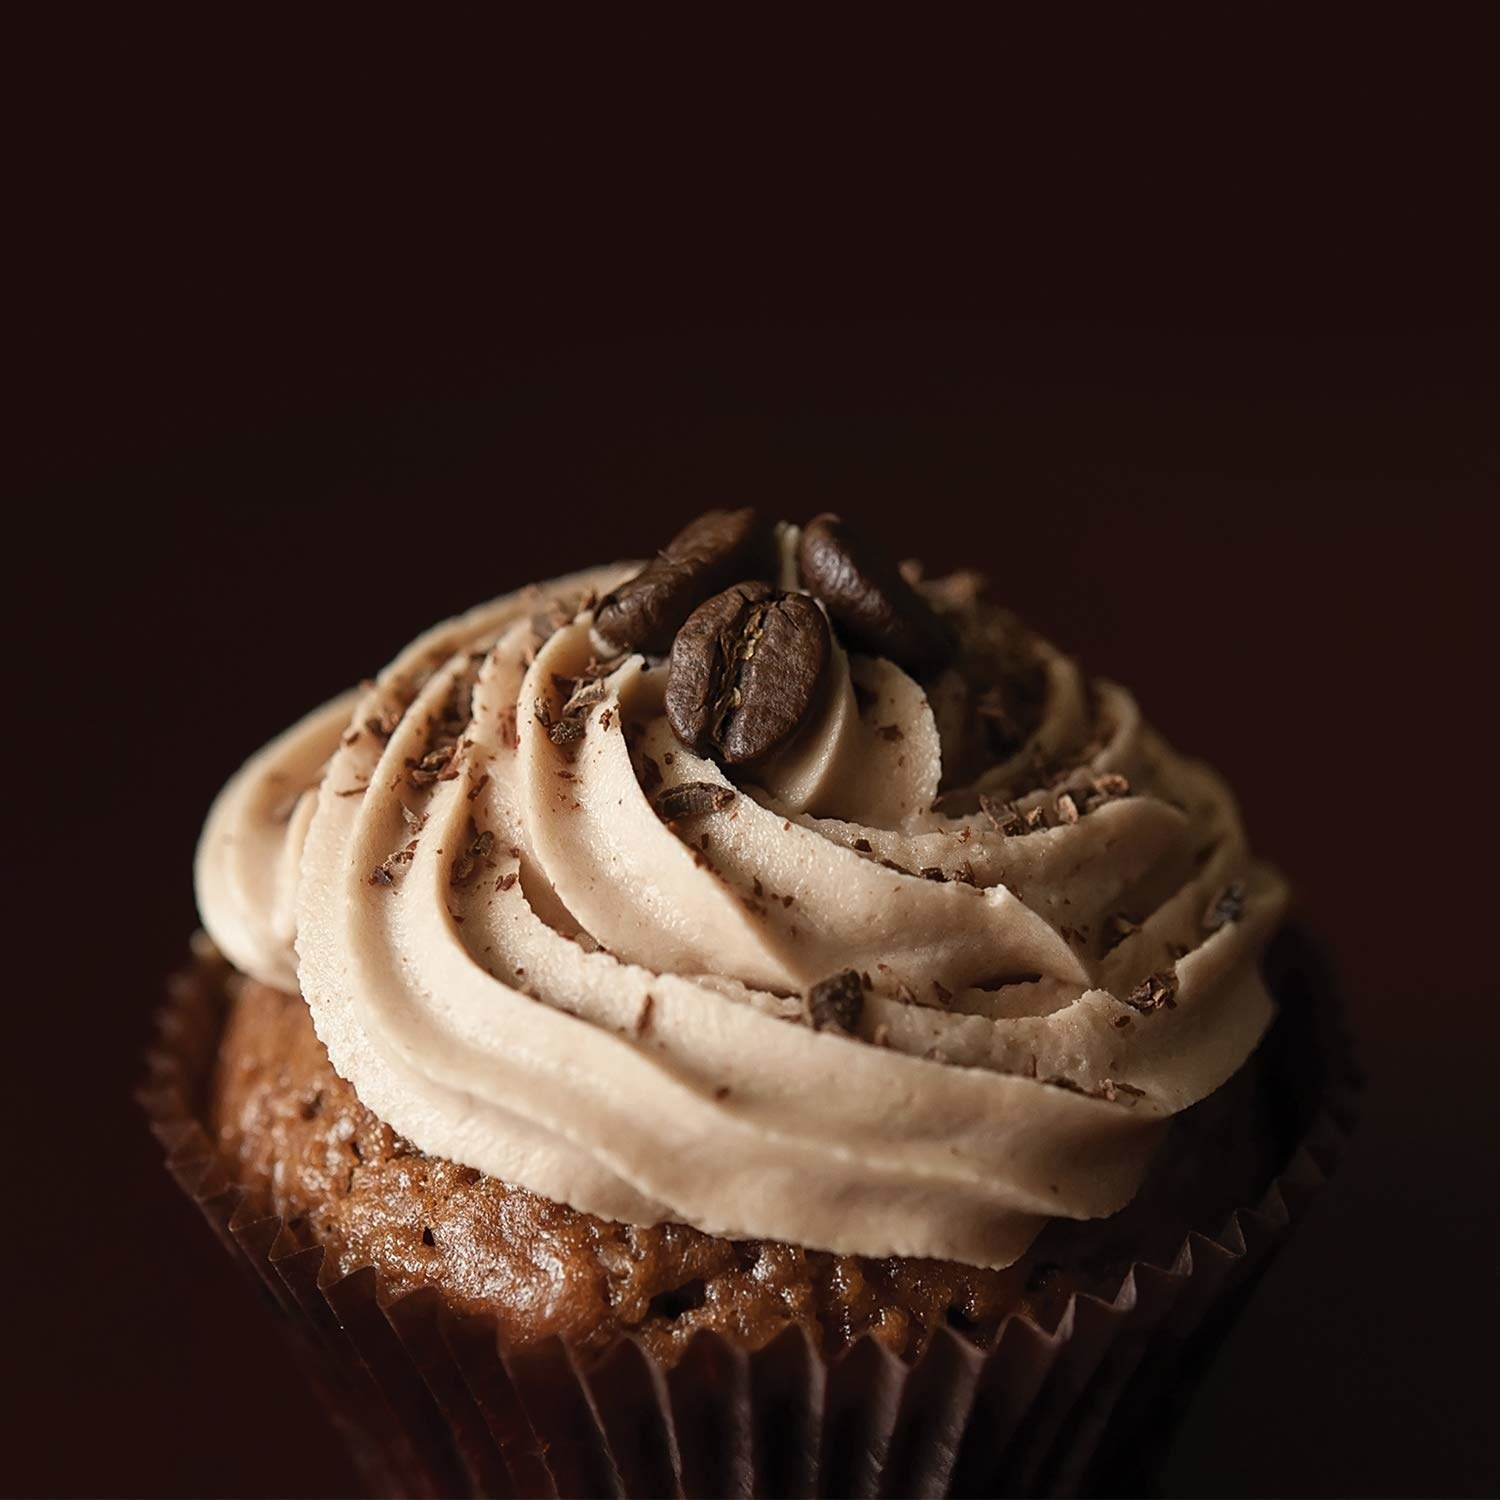 Coffee cupcake with icing and chocolate flakes.